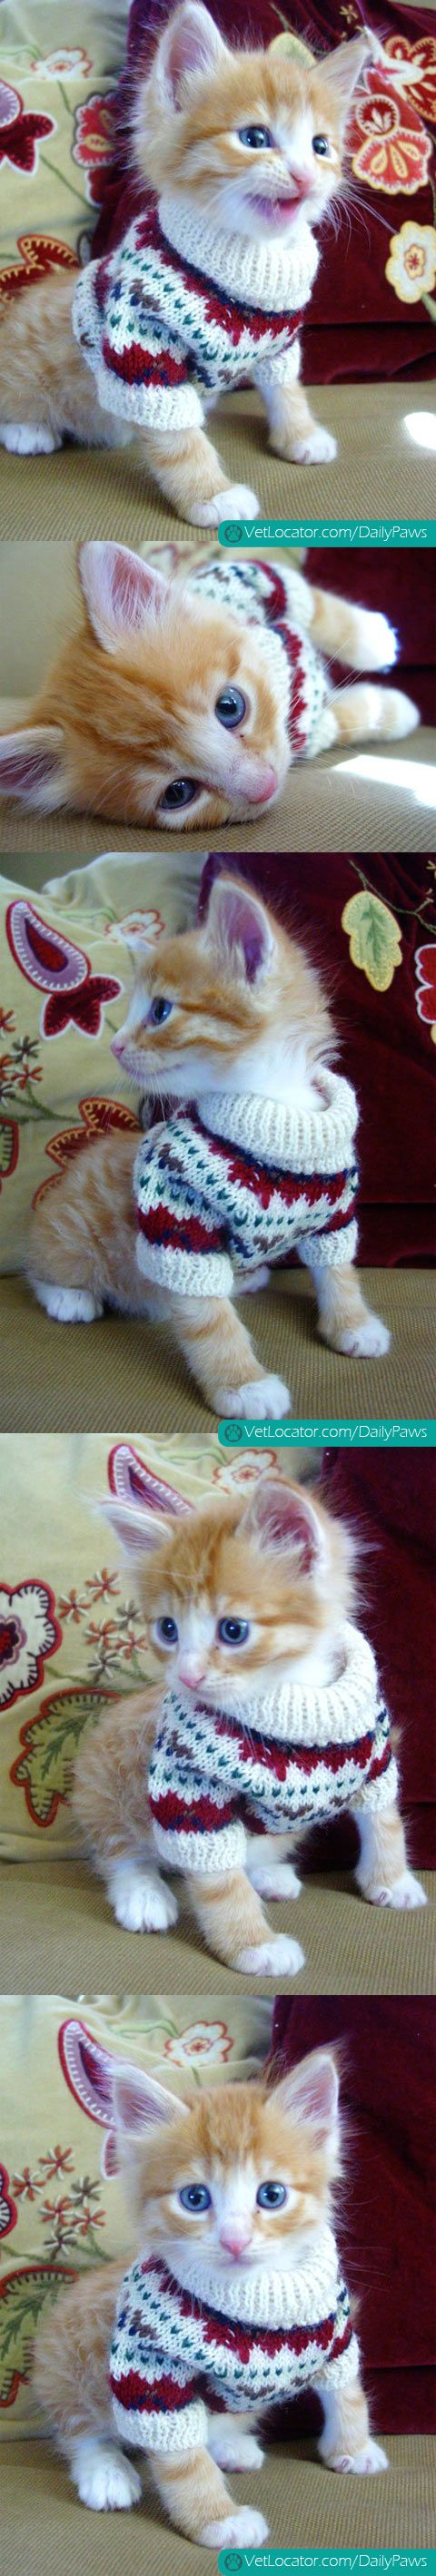 Adorable Kitten in a Sweater - http://www.vetlocator.com/dailypaws/2013/04/adorable-kitten-in-a-sweater/